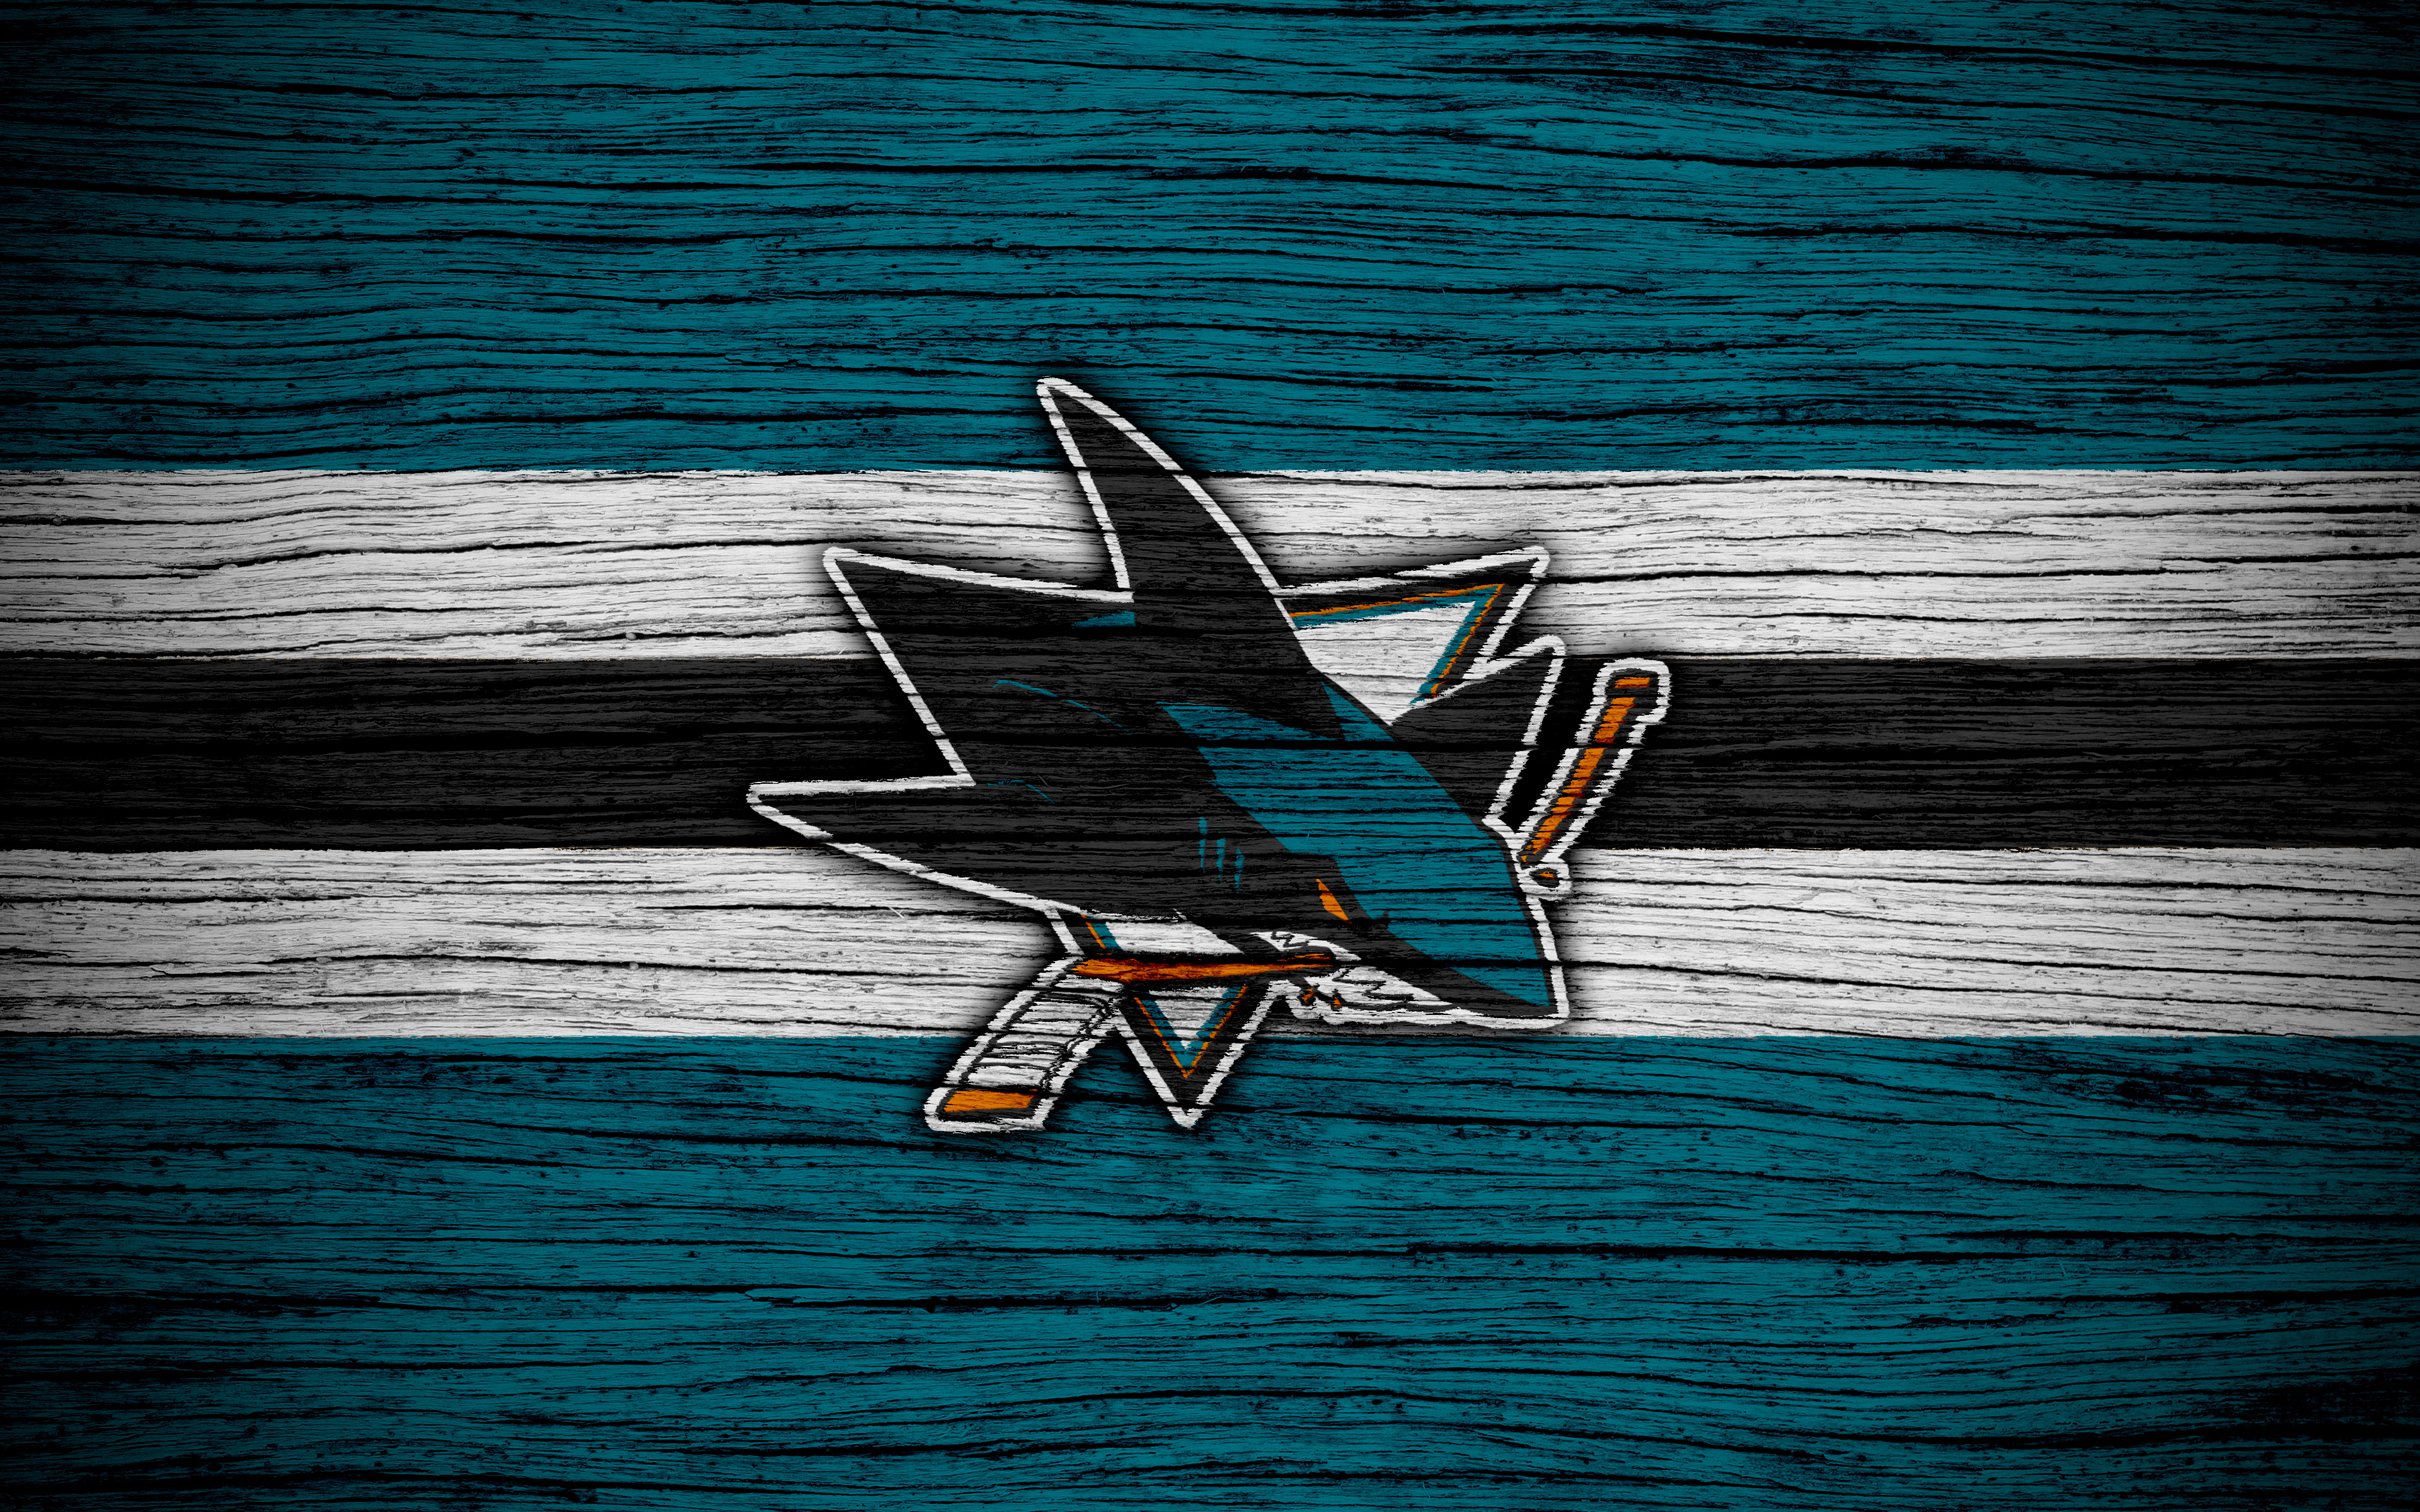 San Jose Sharks 4k Ultra Hd Wallpaper Background Image